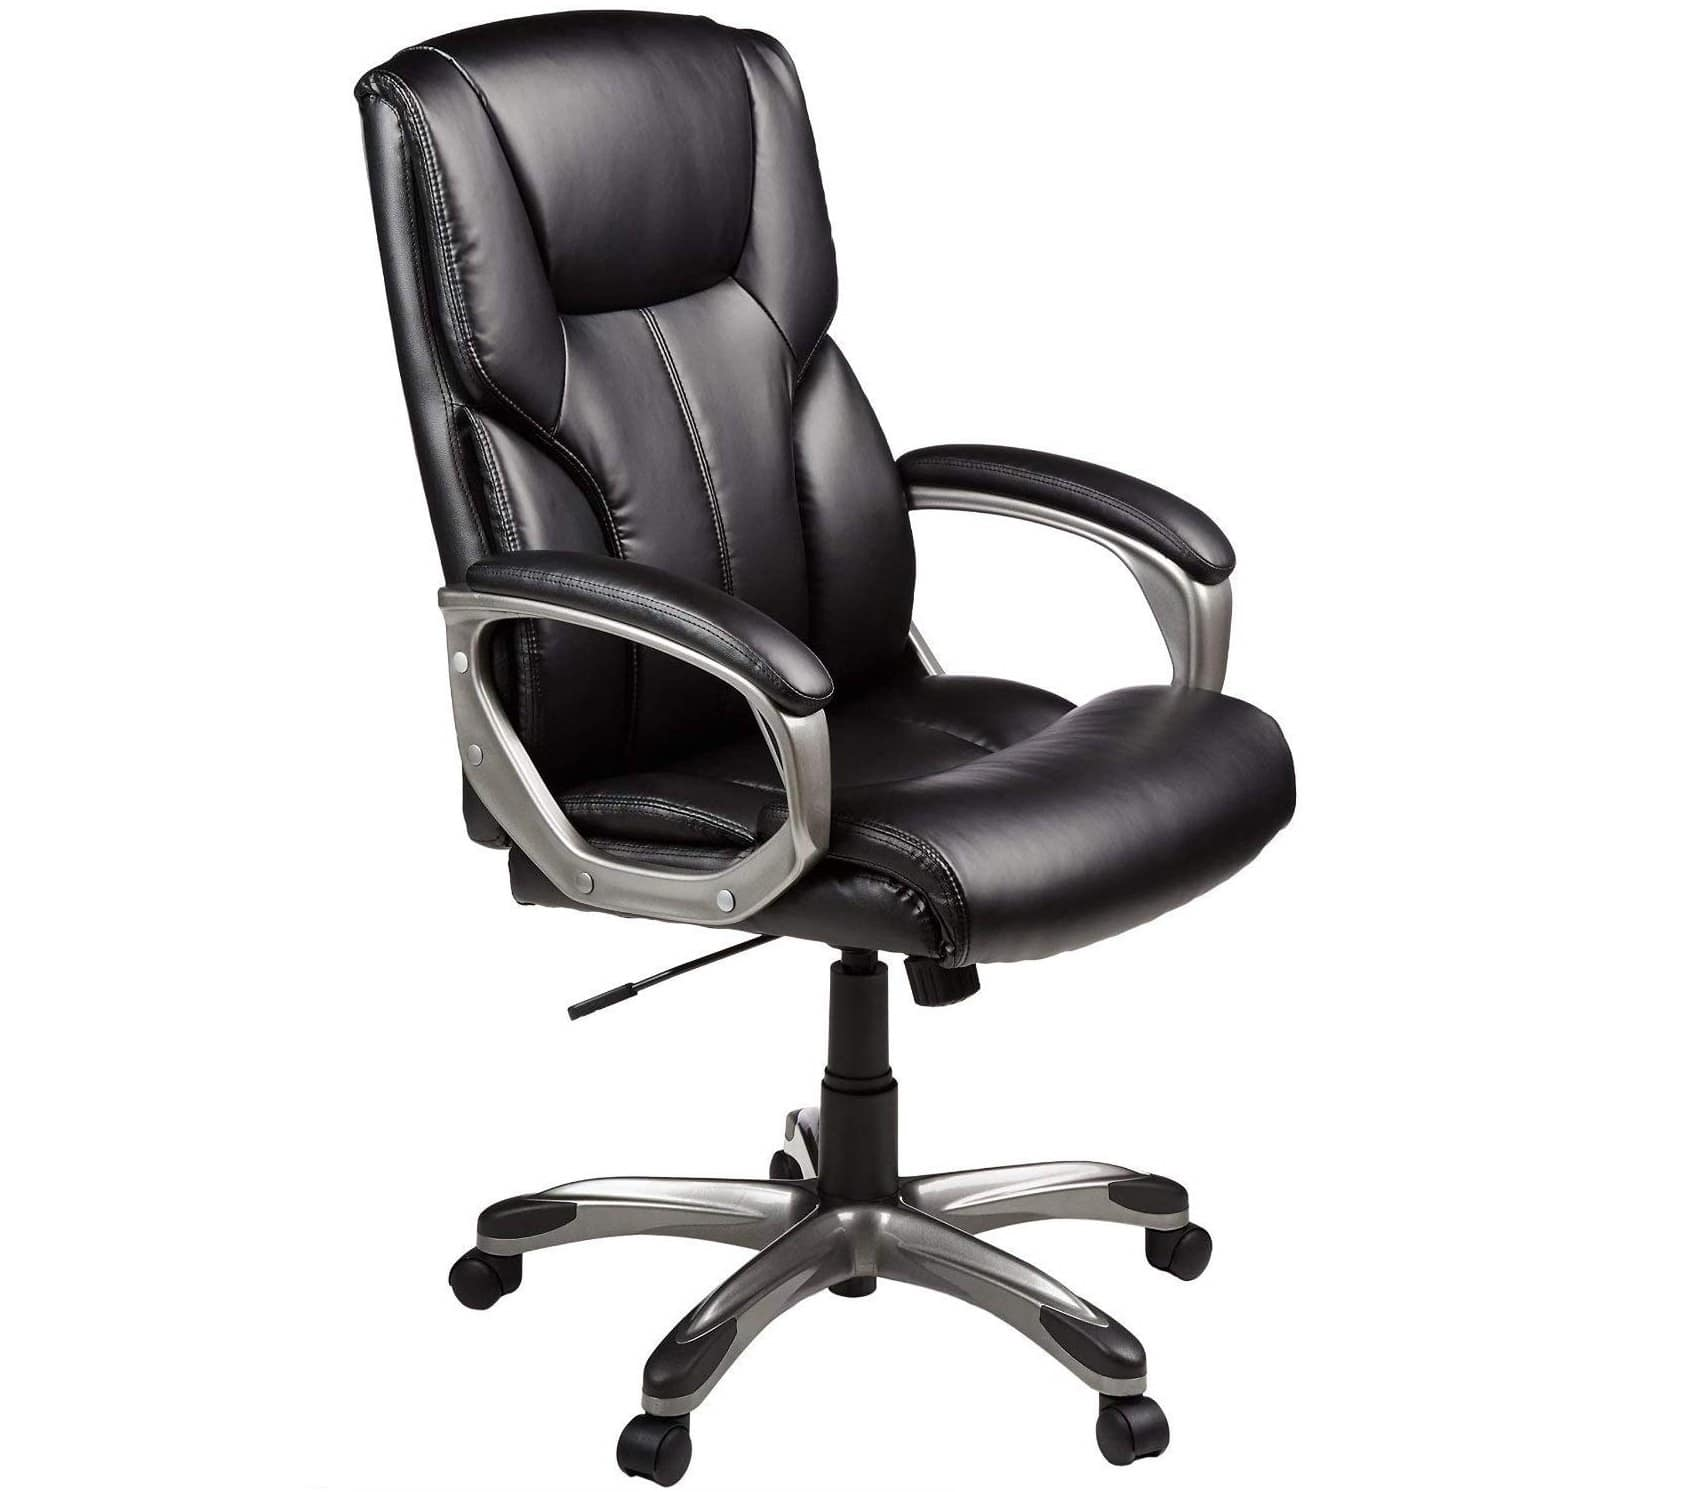 1.AmazonBasics High-Back Executive Swivel Office Computer Desk Chair - Black with Pewter Finish, BIFMA Certified